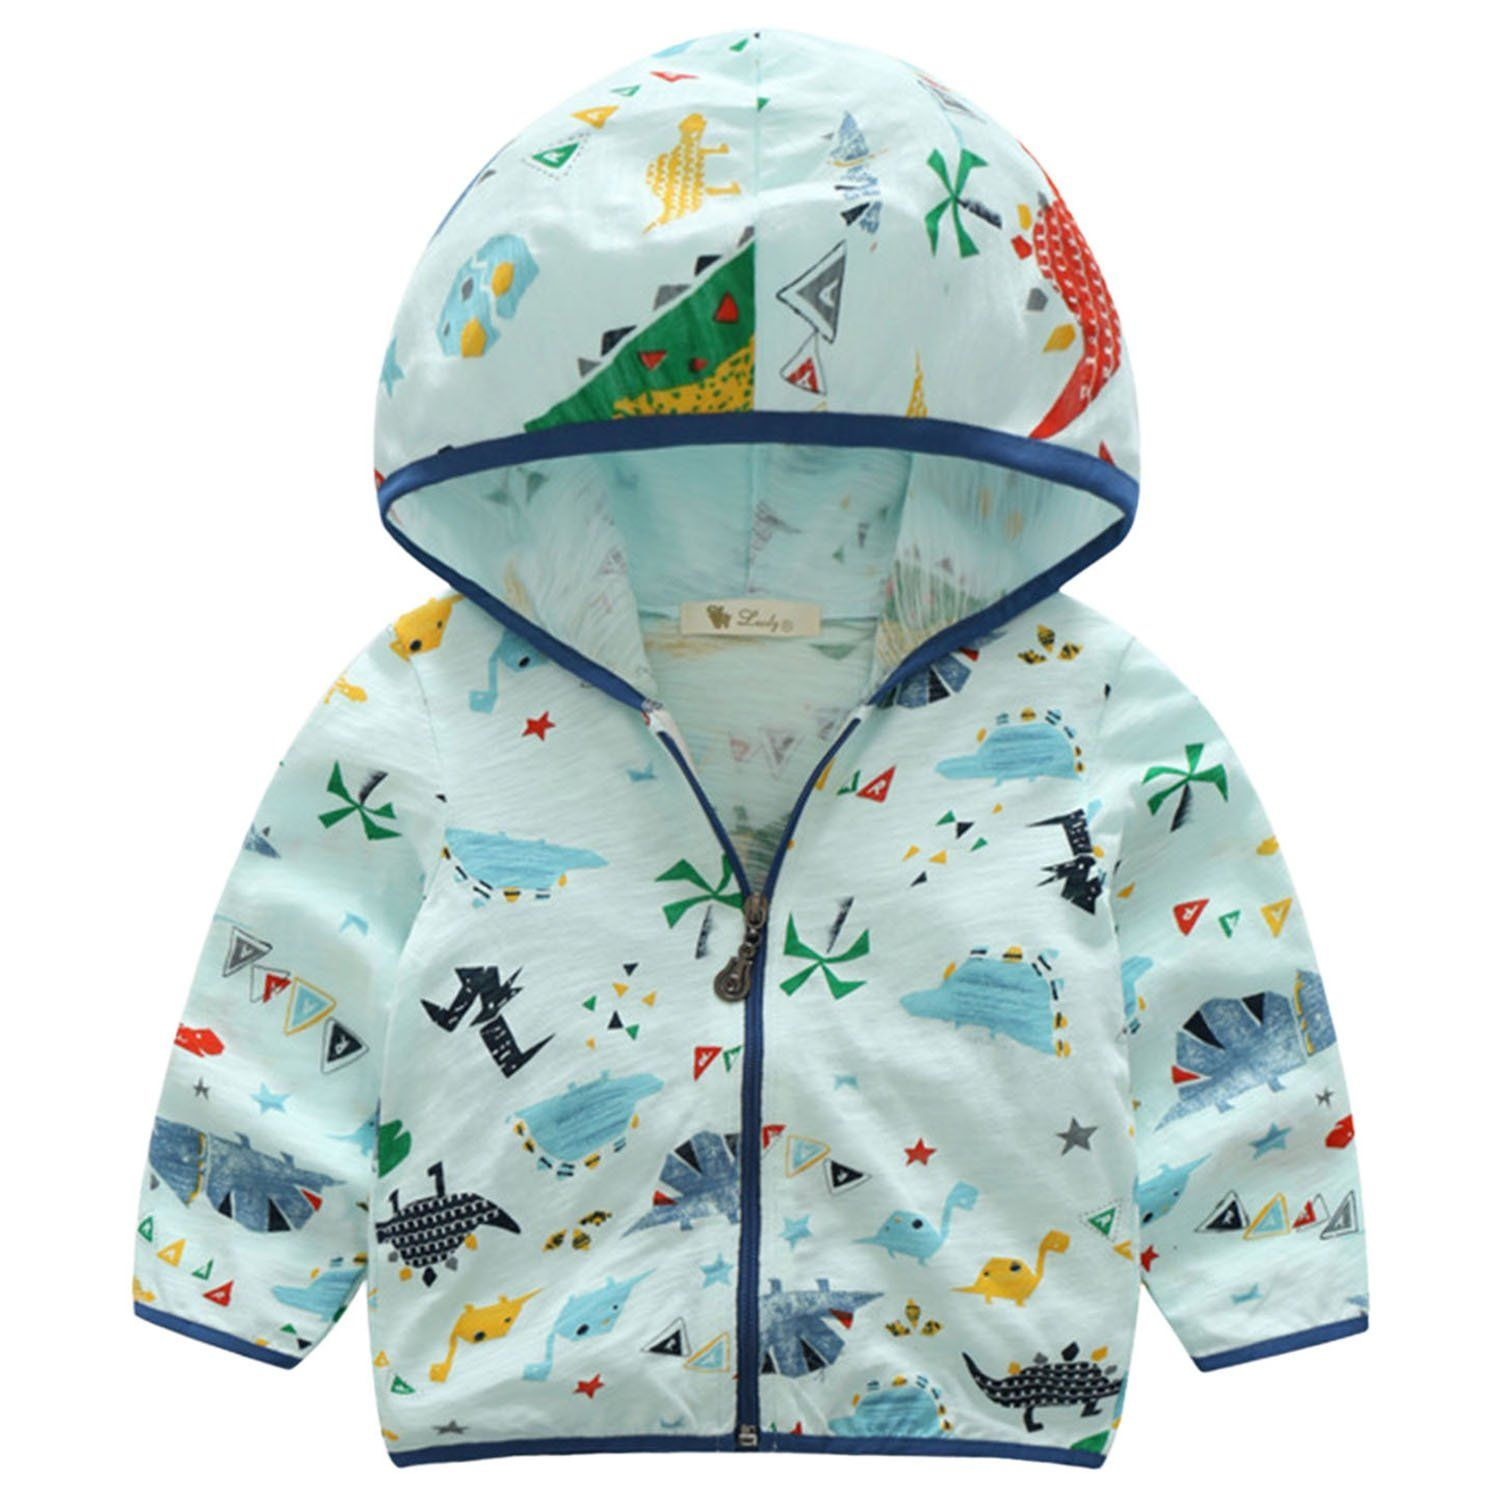 c1669d294 Summer Boys Long Sleeve Soft Cotton Dinosaur Printing Sun Protection ...